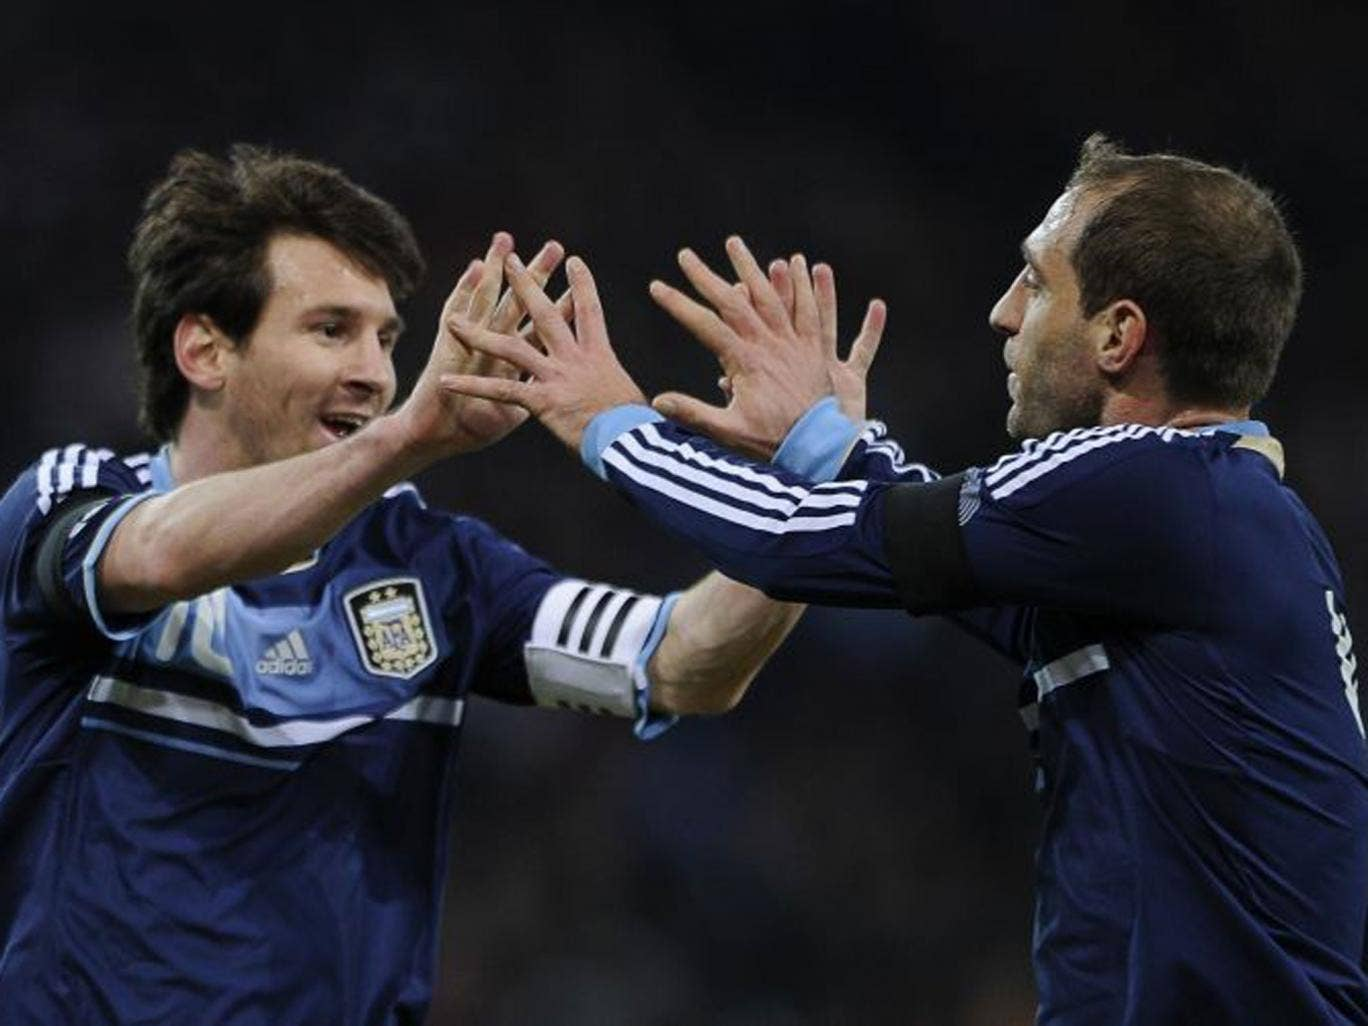 Hand it to him: Zabaleta (right) said he did not think Lionel Messi would be 'that' good until he saw him play for the Argentina U-20s